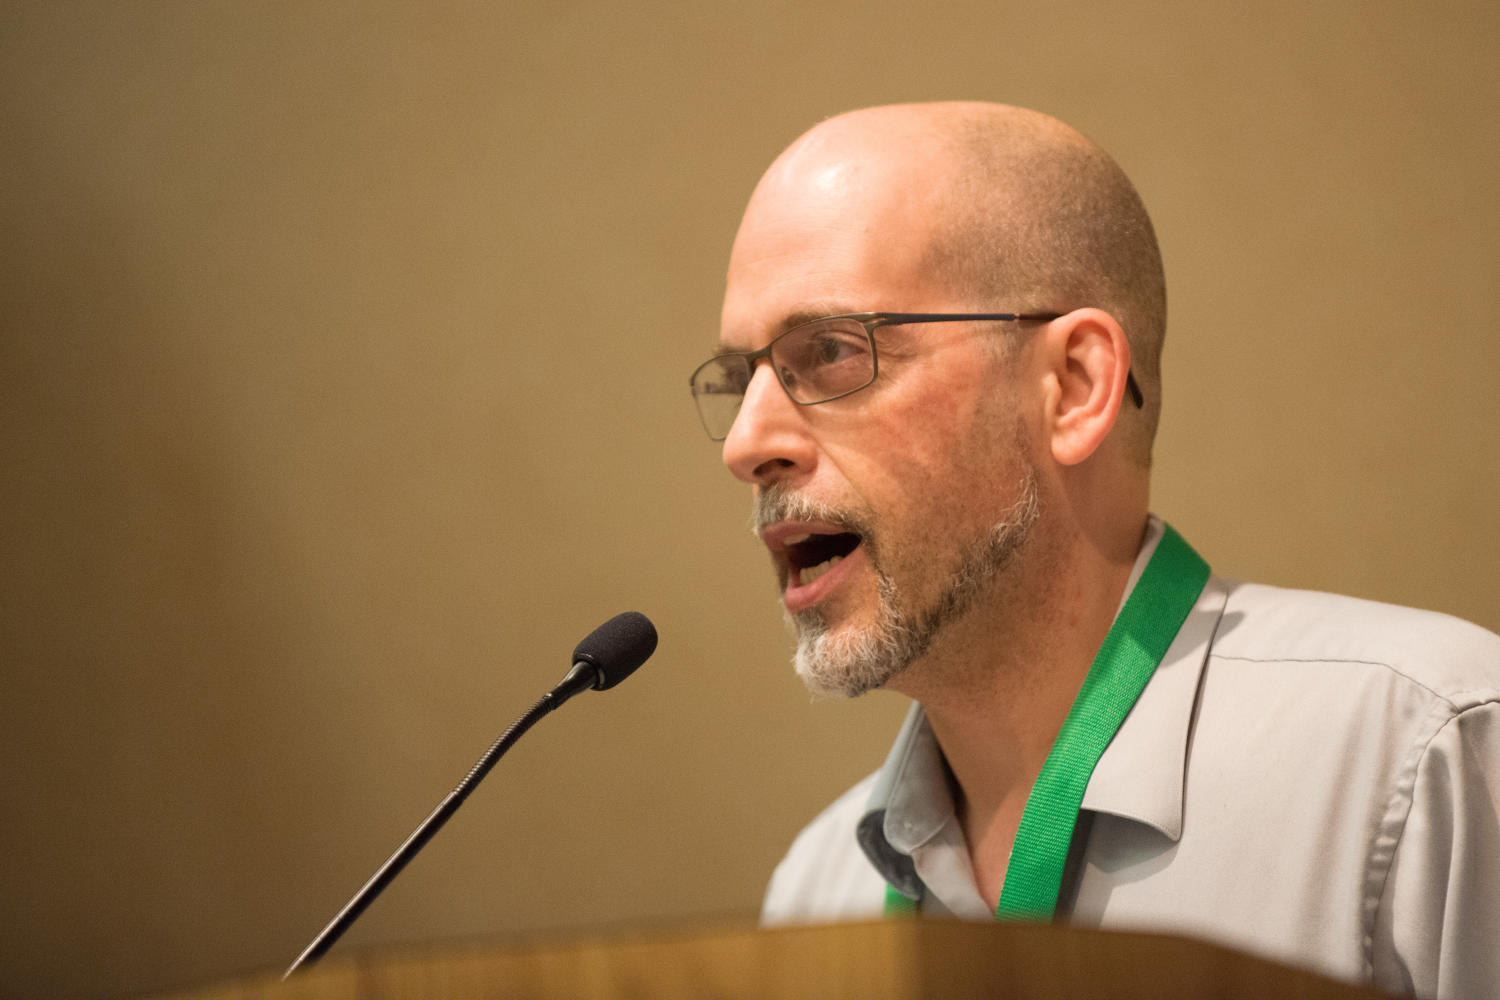 """[Mark Johnson speaking at a plenary titled """"Deconstruction of a Deadline Narrative""""], Photograph of Mark Johnson standing at a podium and speaking during the plenary called """"Deconstruction of a Deadline Narrative"""". The event was held as a part of the Mayborn Literary Nonfiction Conference at the Hilton DFW Lakes Executive Conference Center in Grapevine, Texas.,"""